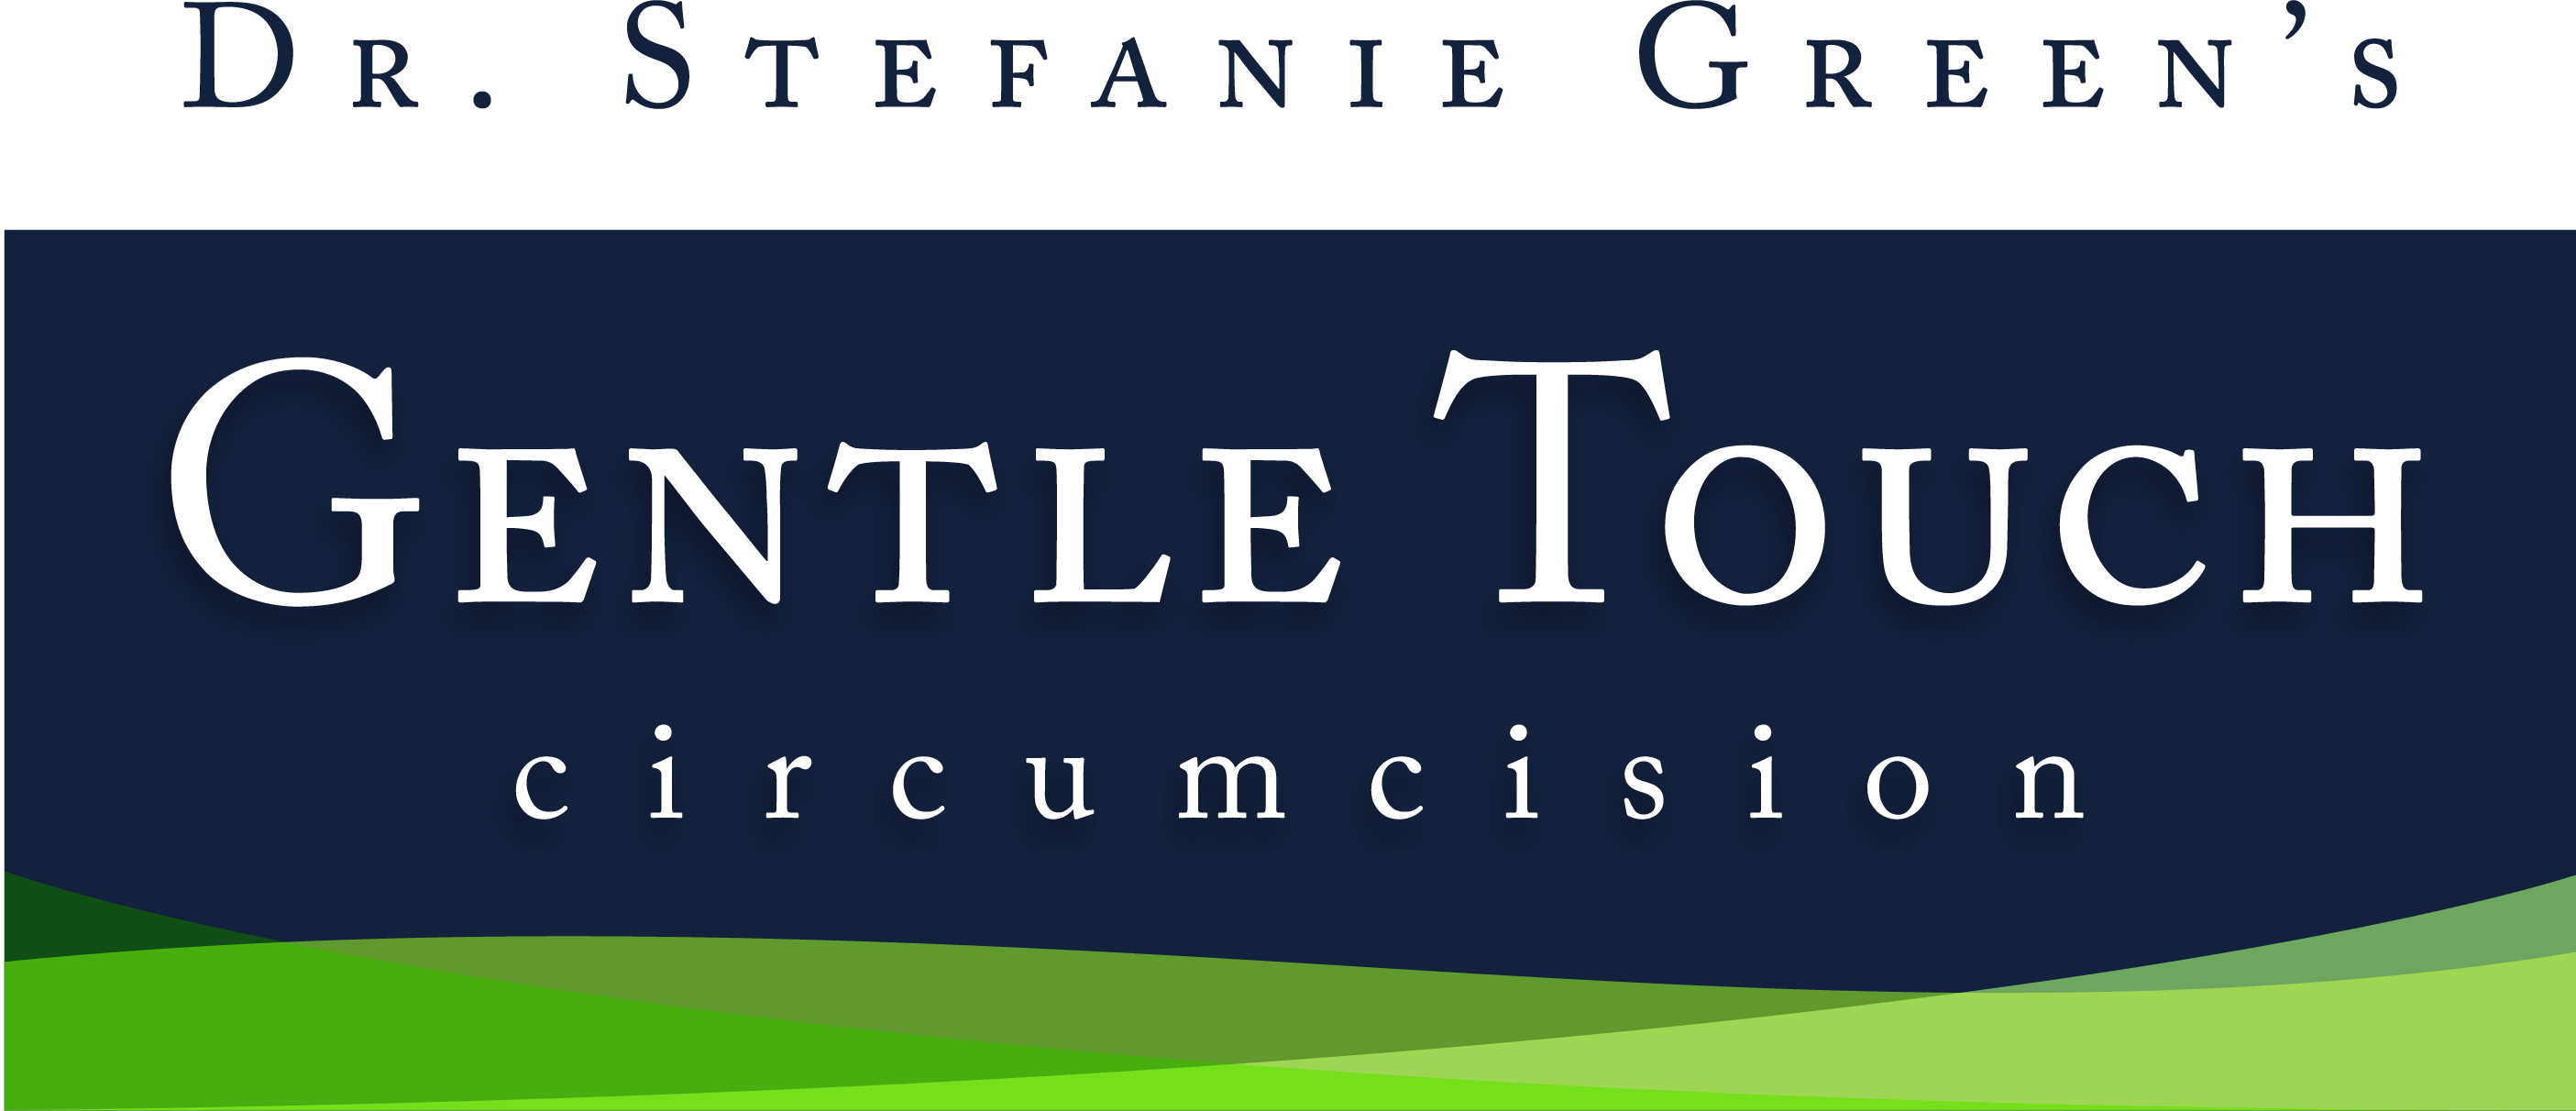 Gentle Touch Circumcision